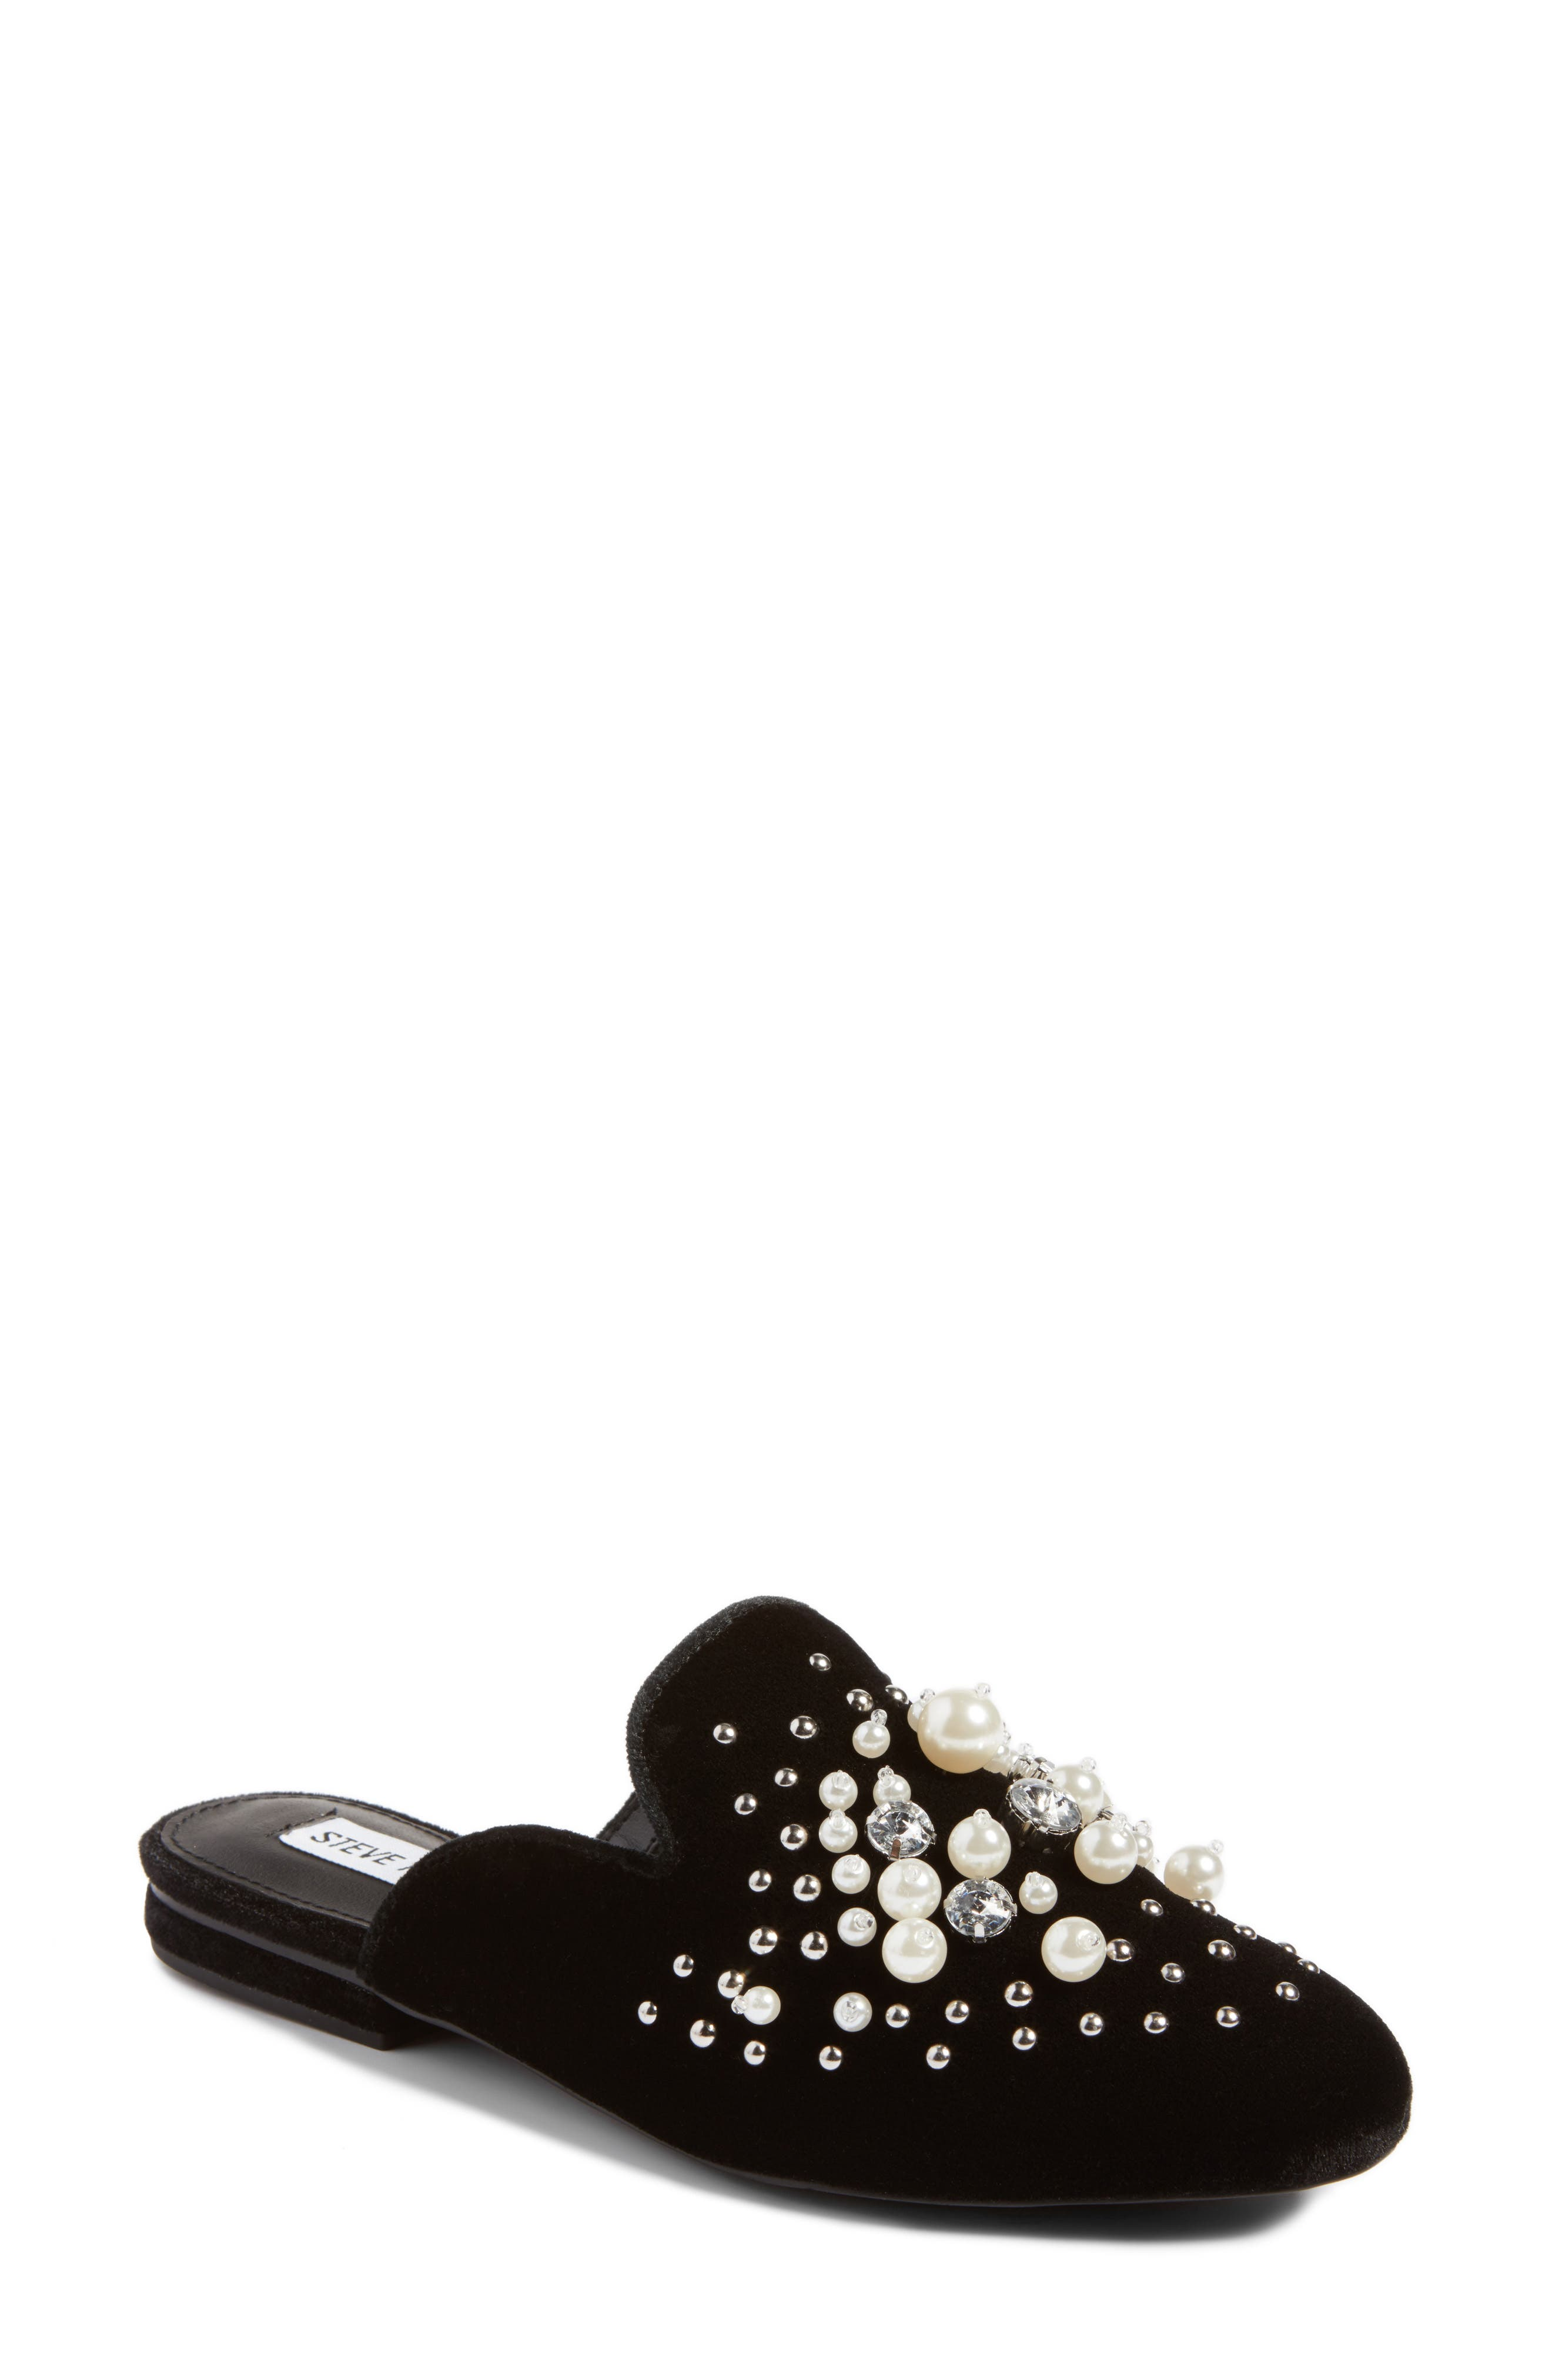 Alternate Image 1 Selected - Steve Madden Imitation Pearl Embellished Mule (Women)